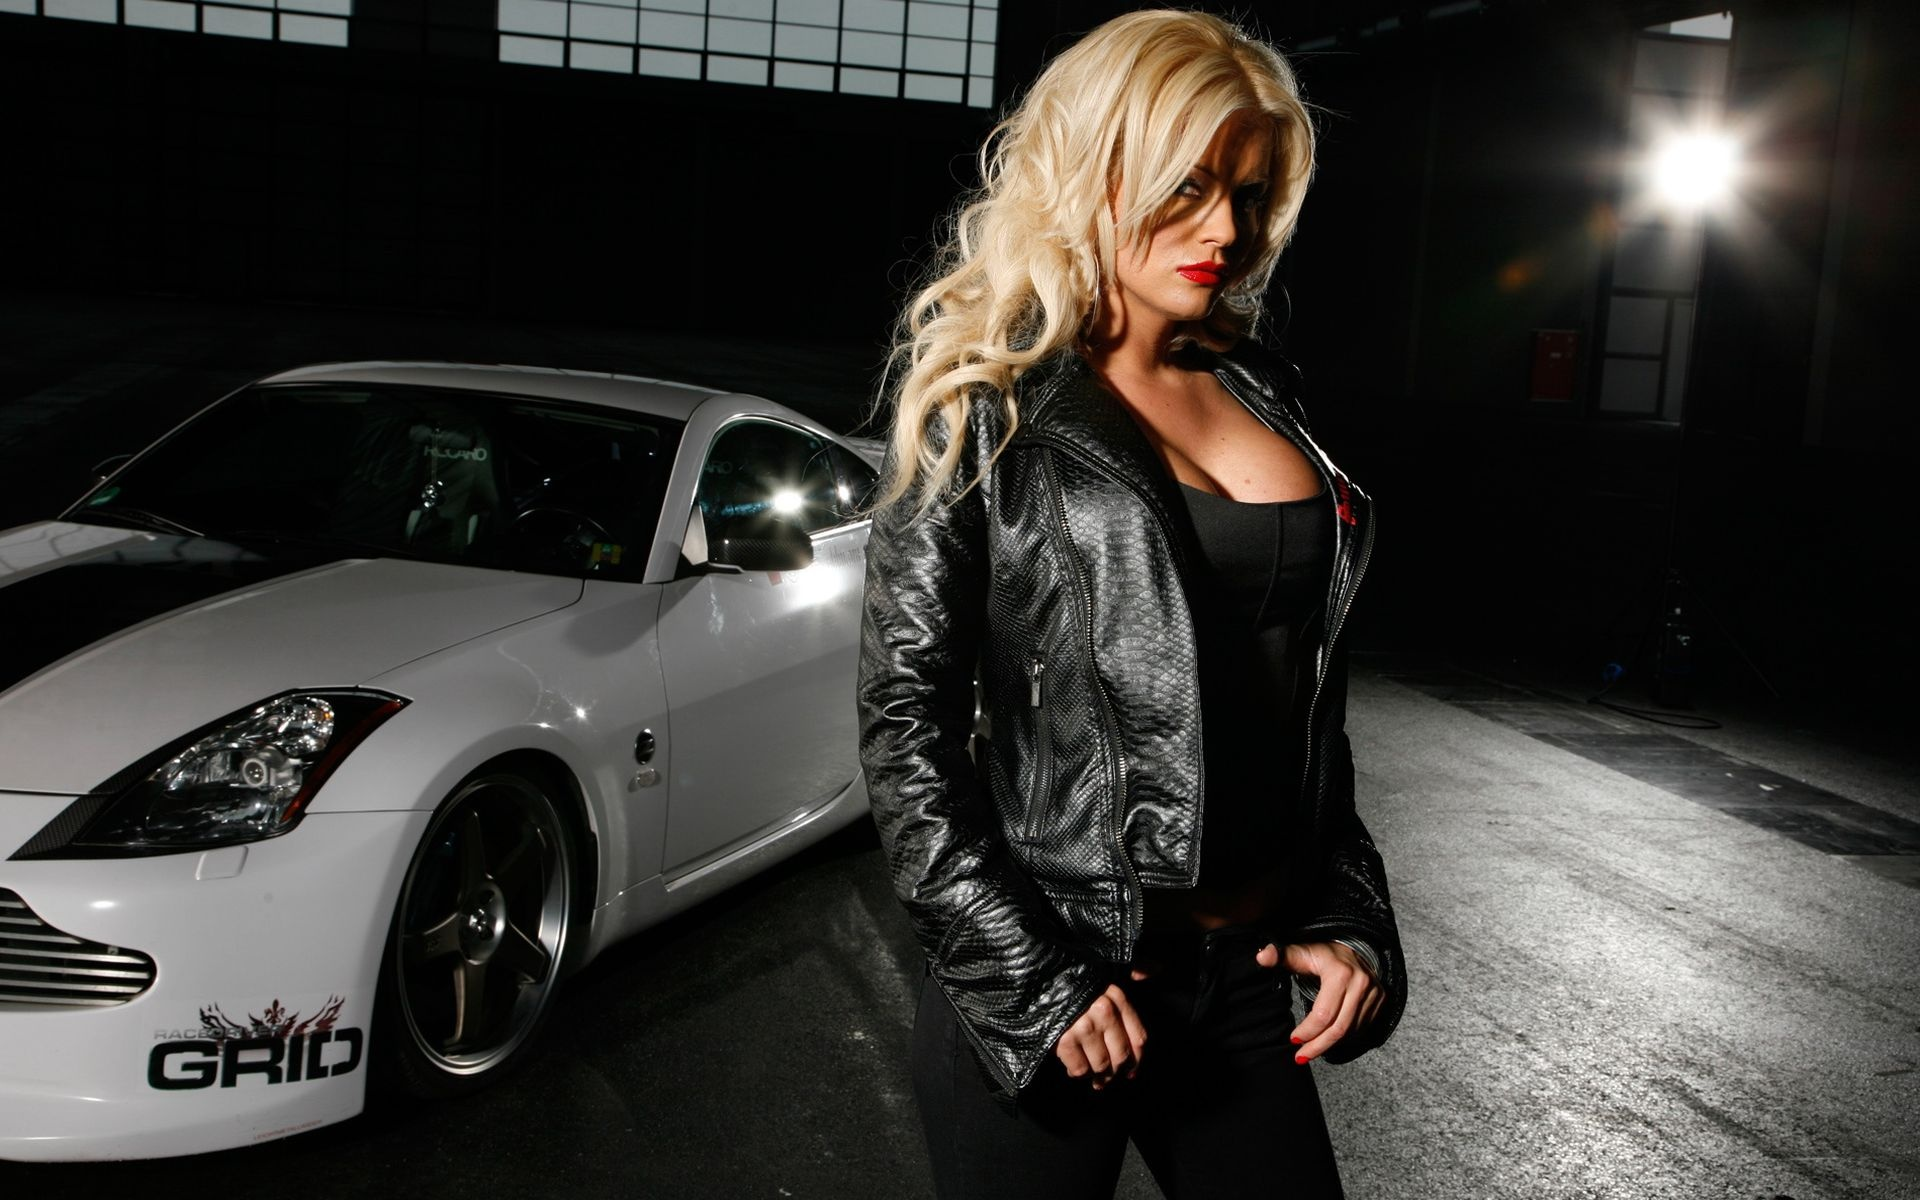 Cars With Tough Girl Wallpaper 1920x1200